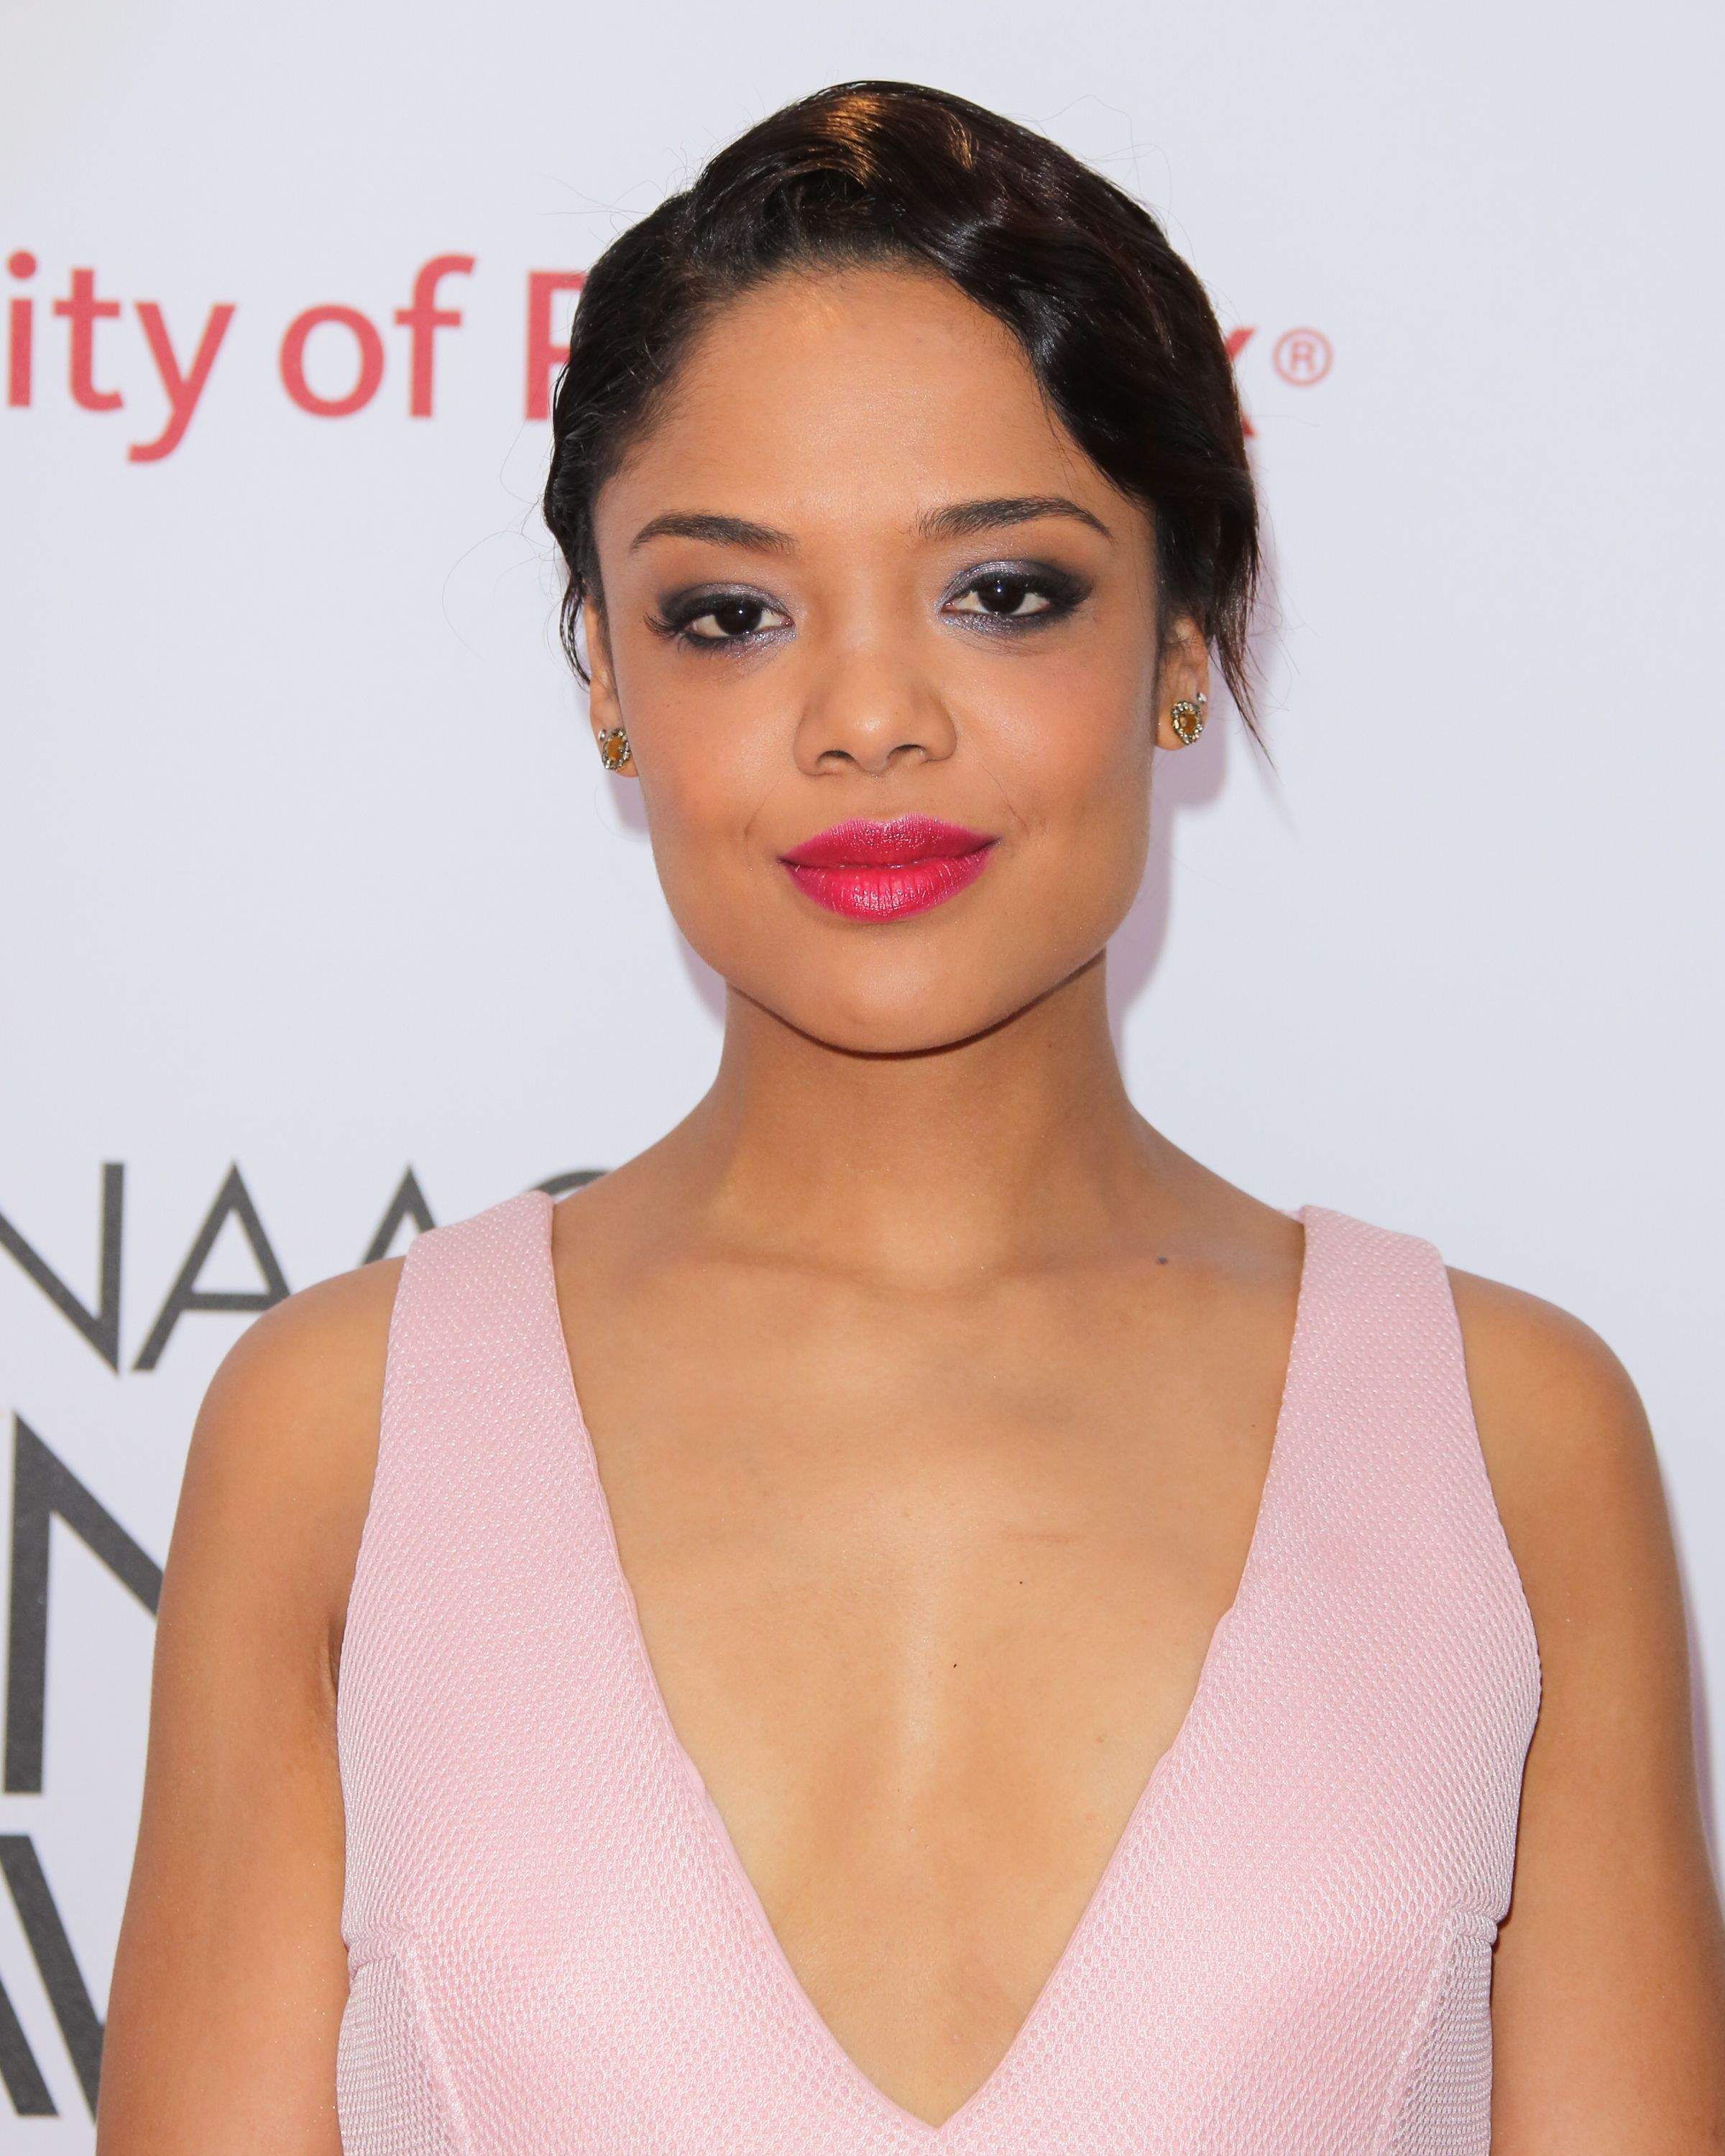 <p>You may remember Thompson from her roles in <em>Veronica Mars</em>,<em> Heroes</em>, <em>Dear White People</em>, and <em>Selma</em>—but the actress is set to seriously break out alongside Michael B. Jordan and Sylvester Stallone in <em>Creed</em>, the newest Rocky movie.</p>